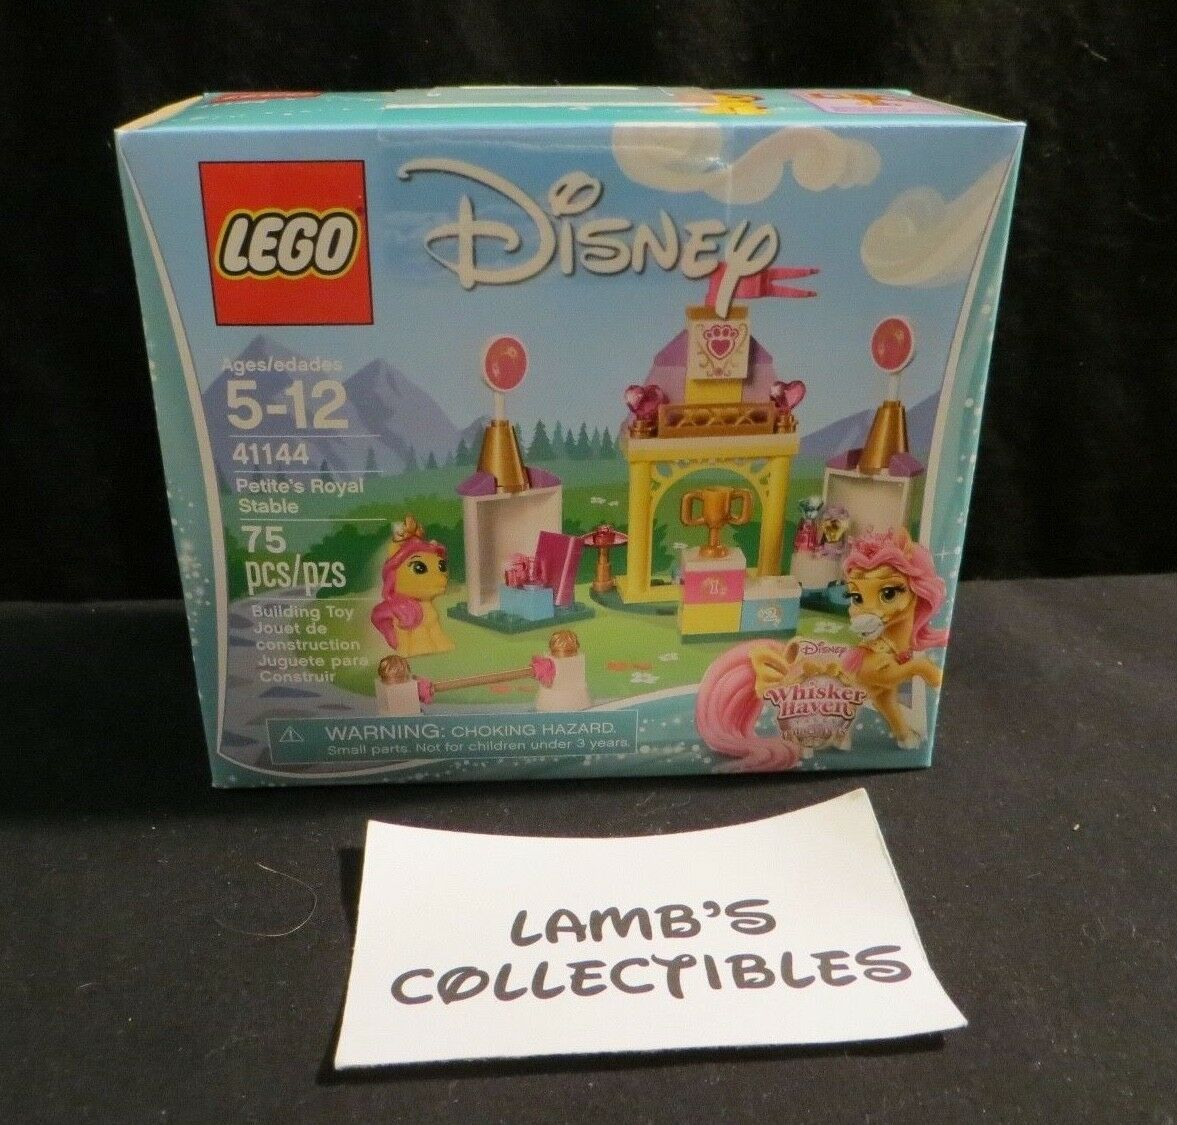 Primary image for Lego Disney 41144 - 75 pieces Petite's Royal Stable Disney Palace pets building